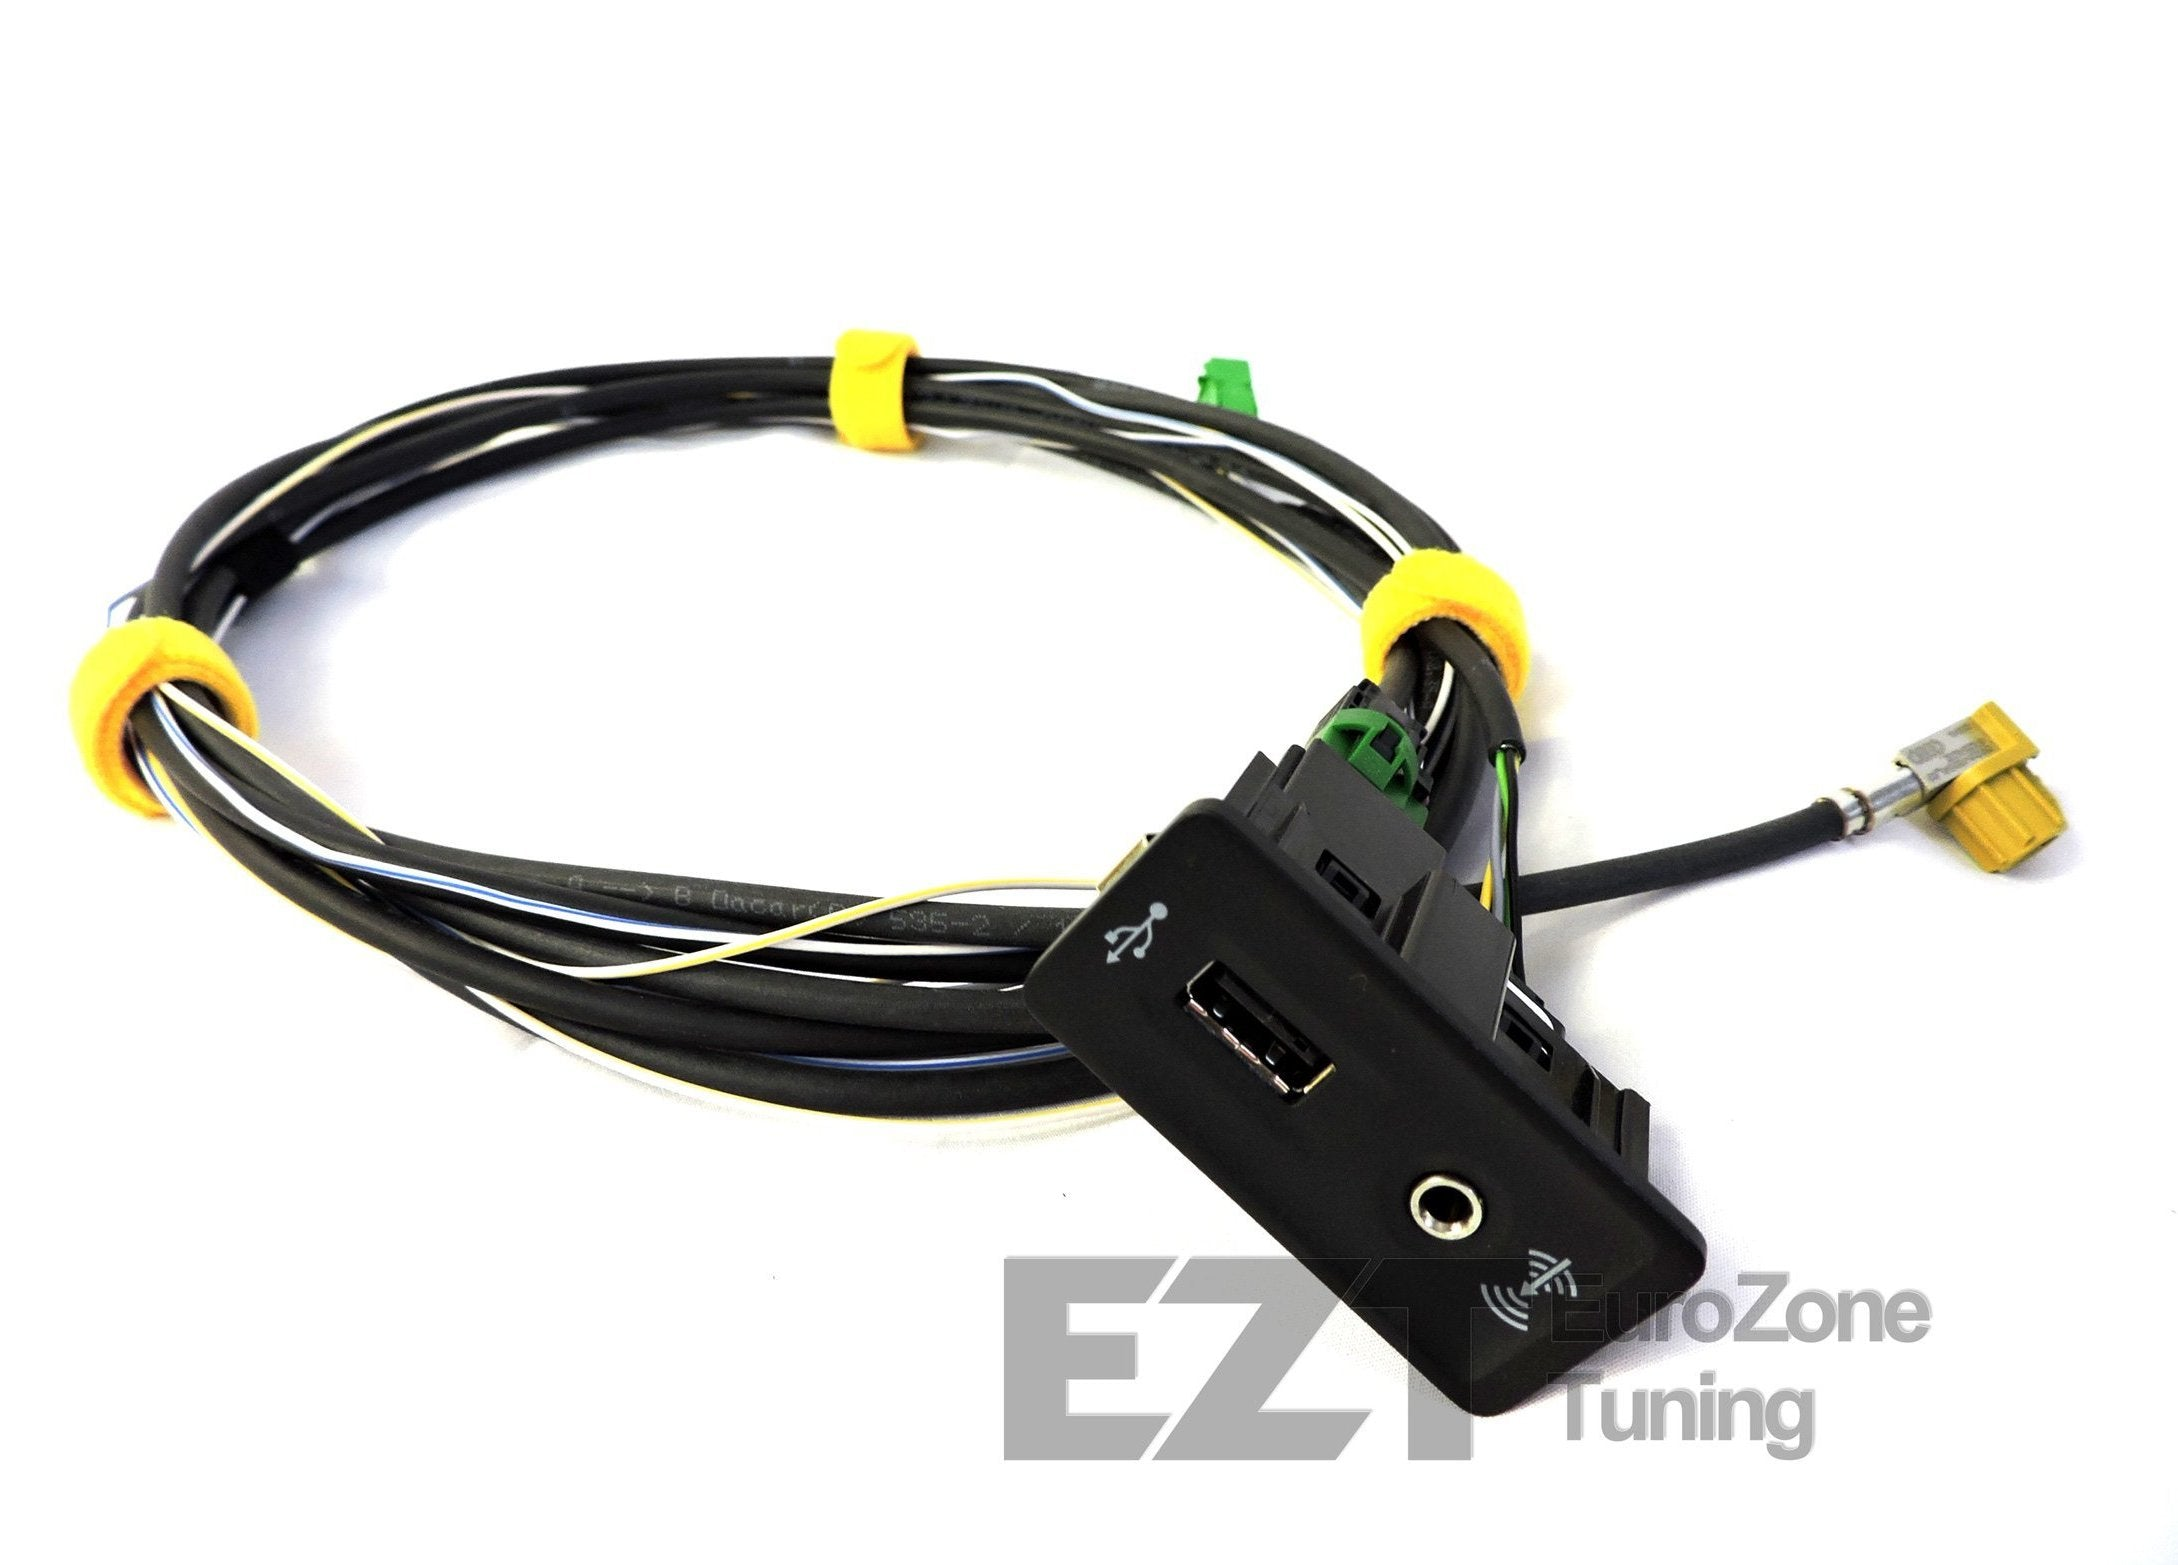 OEM USB/3.5mm Aux Input with Wiring Harness for MIB2 – Eurozone Tuning | Audi Usb Port Wiring |  | EuroZone Tuning